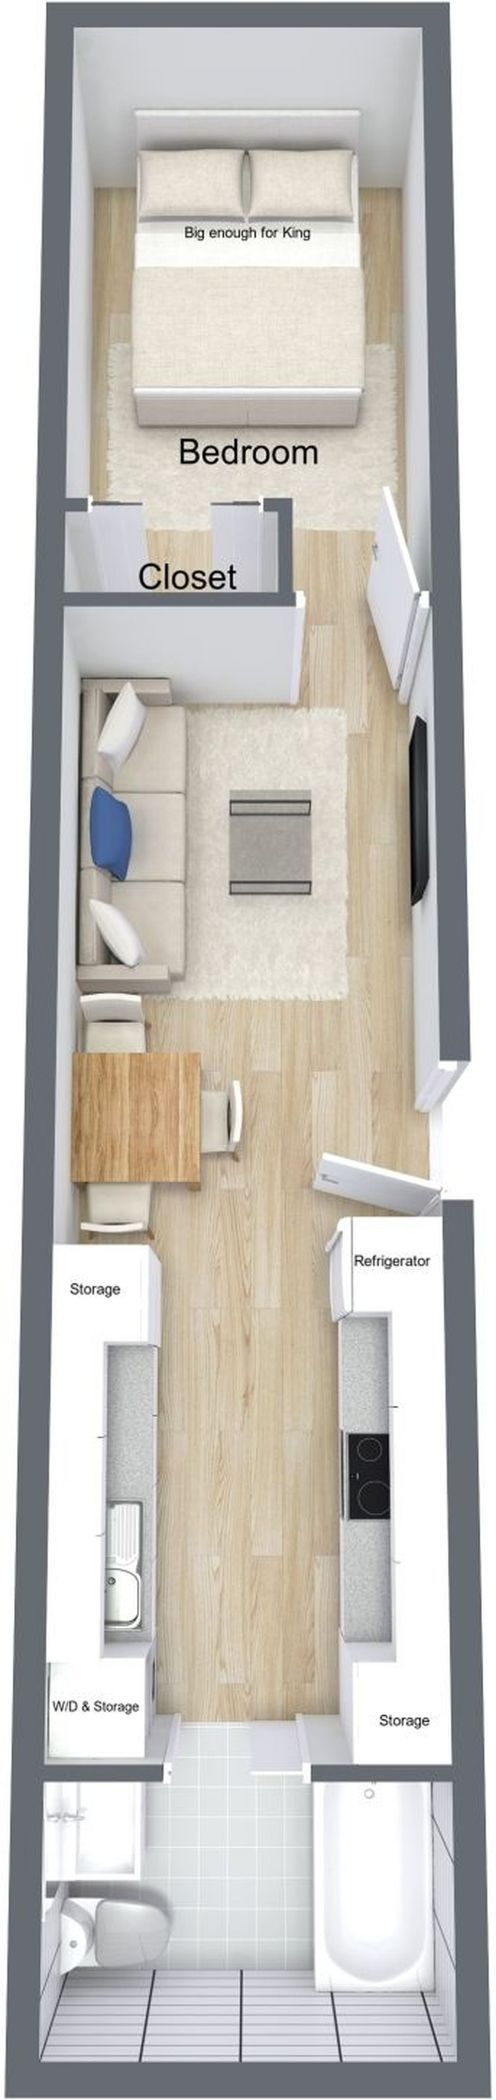 Shipping Container House Plans Ideas 64 | Shipping container house ...